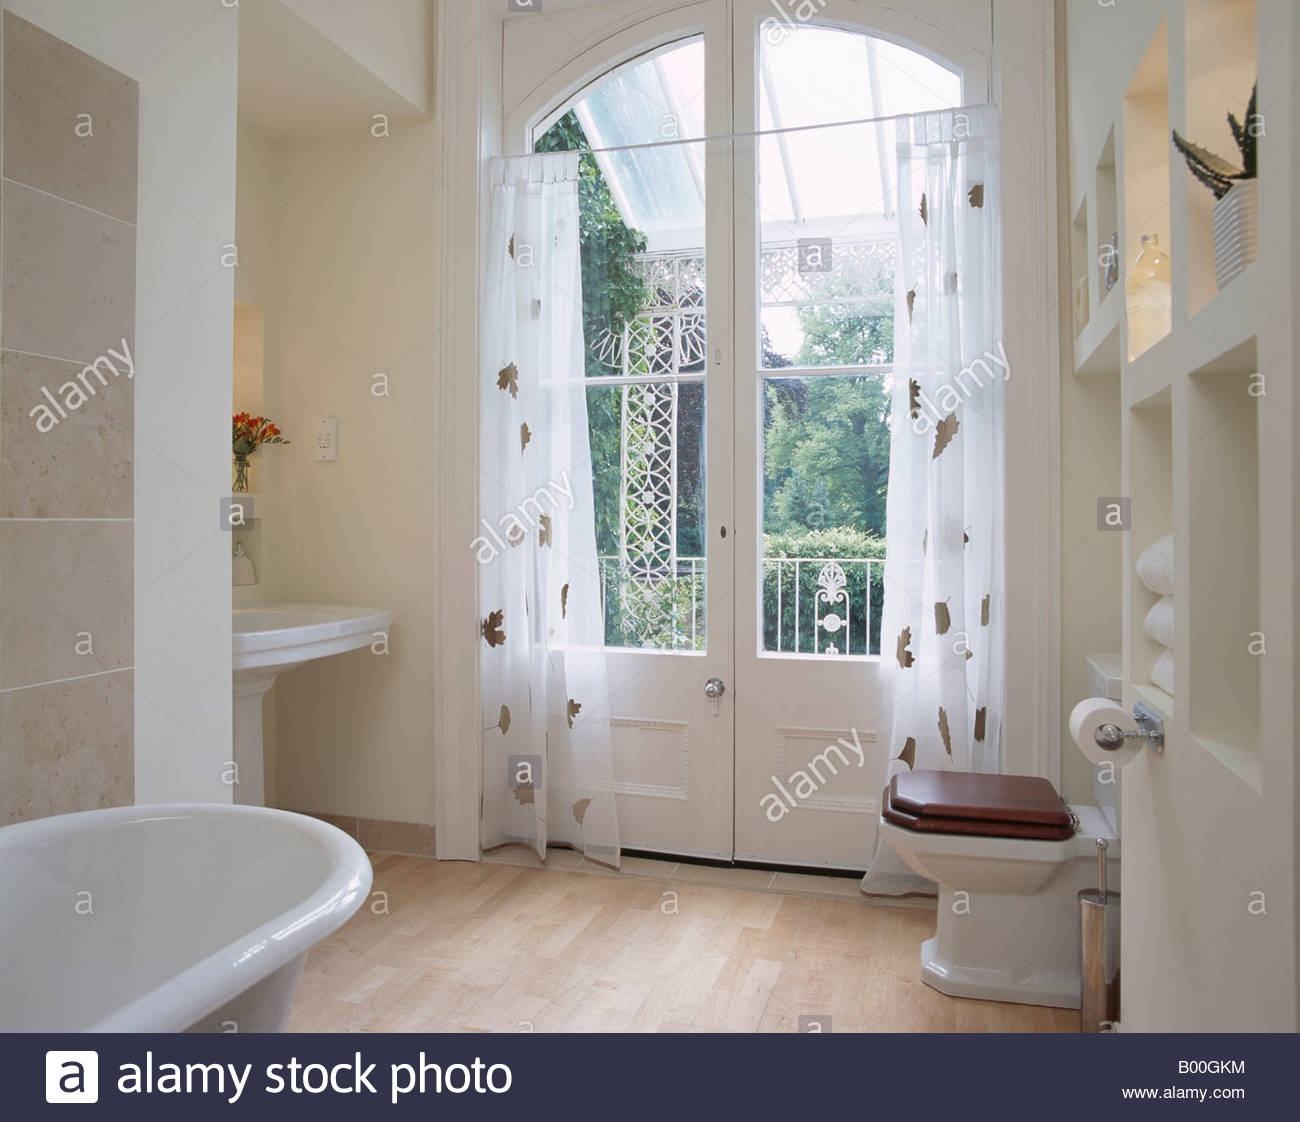 French Doors For A Bathroom